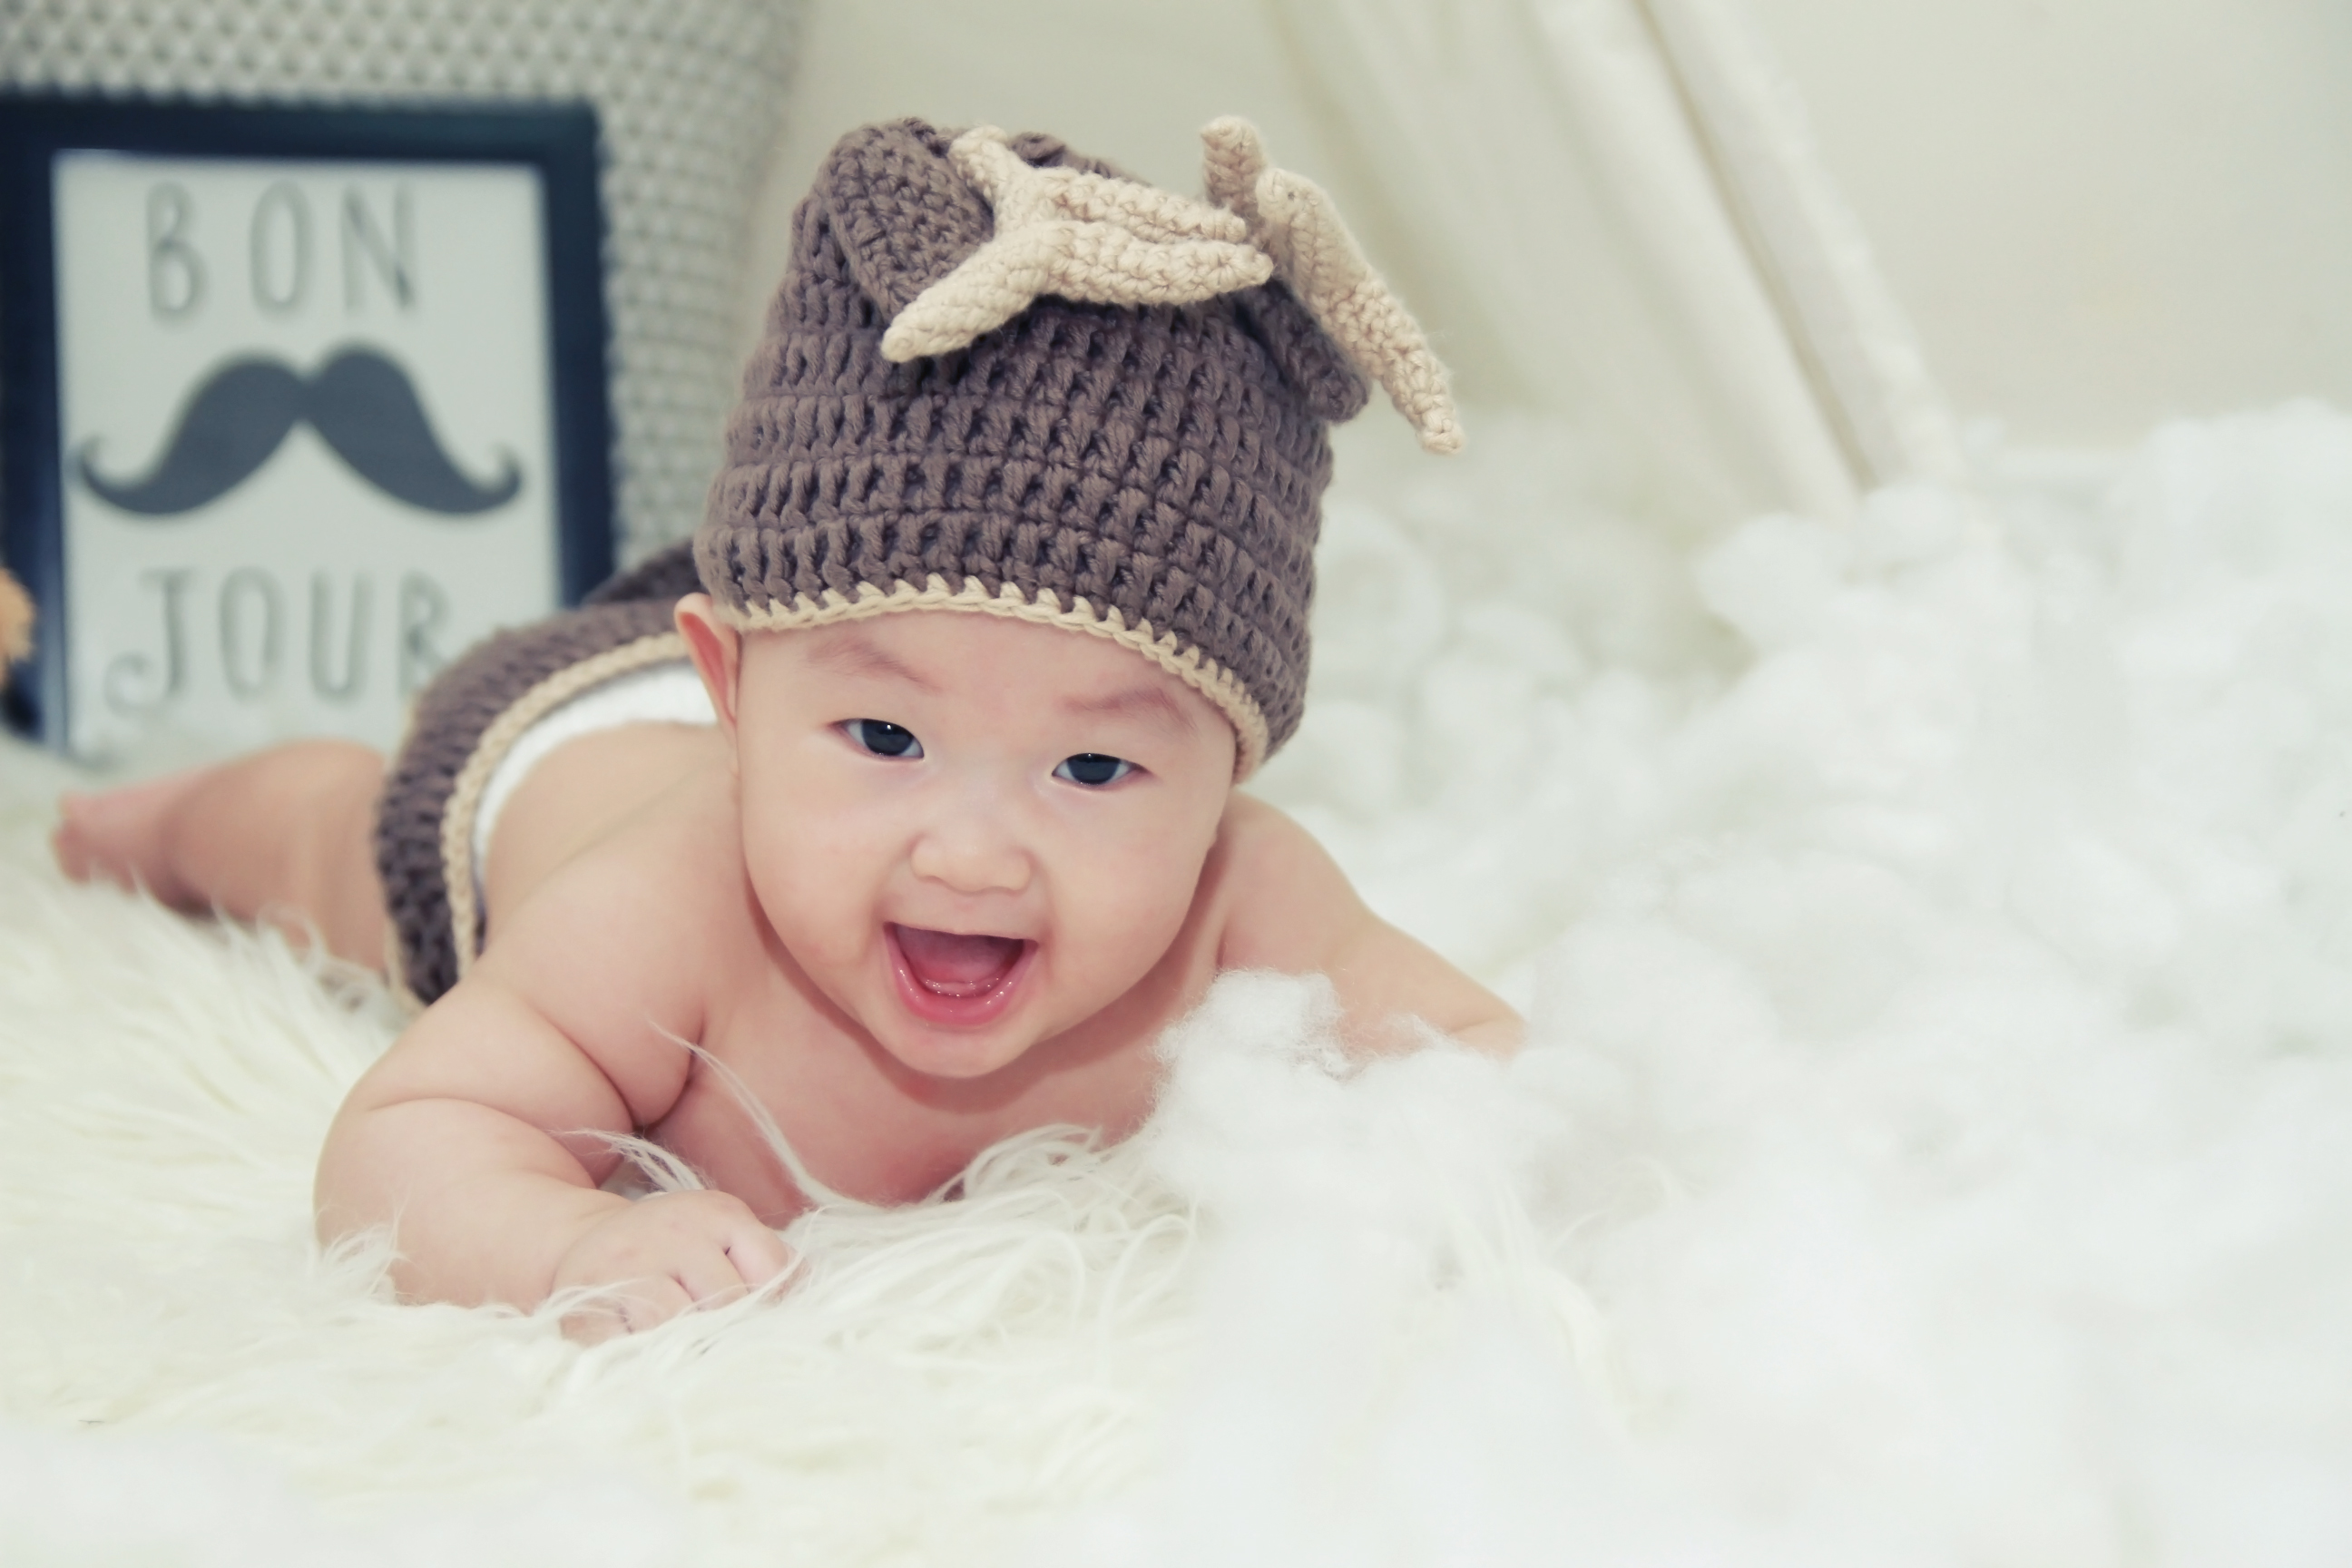 Boy And Girl Hd Wallpaper Baby Smiling 183 Free Stock Photo